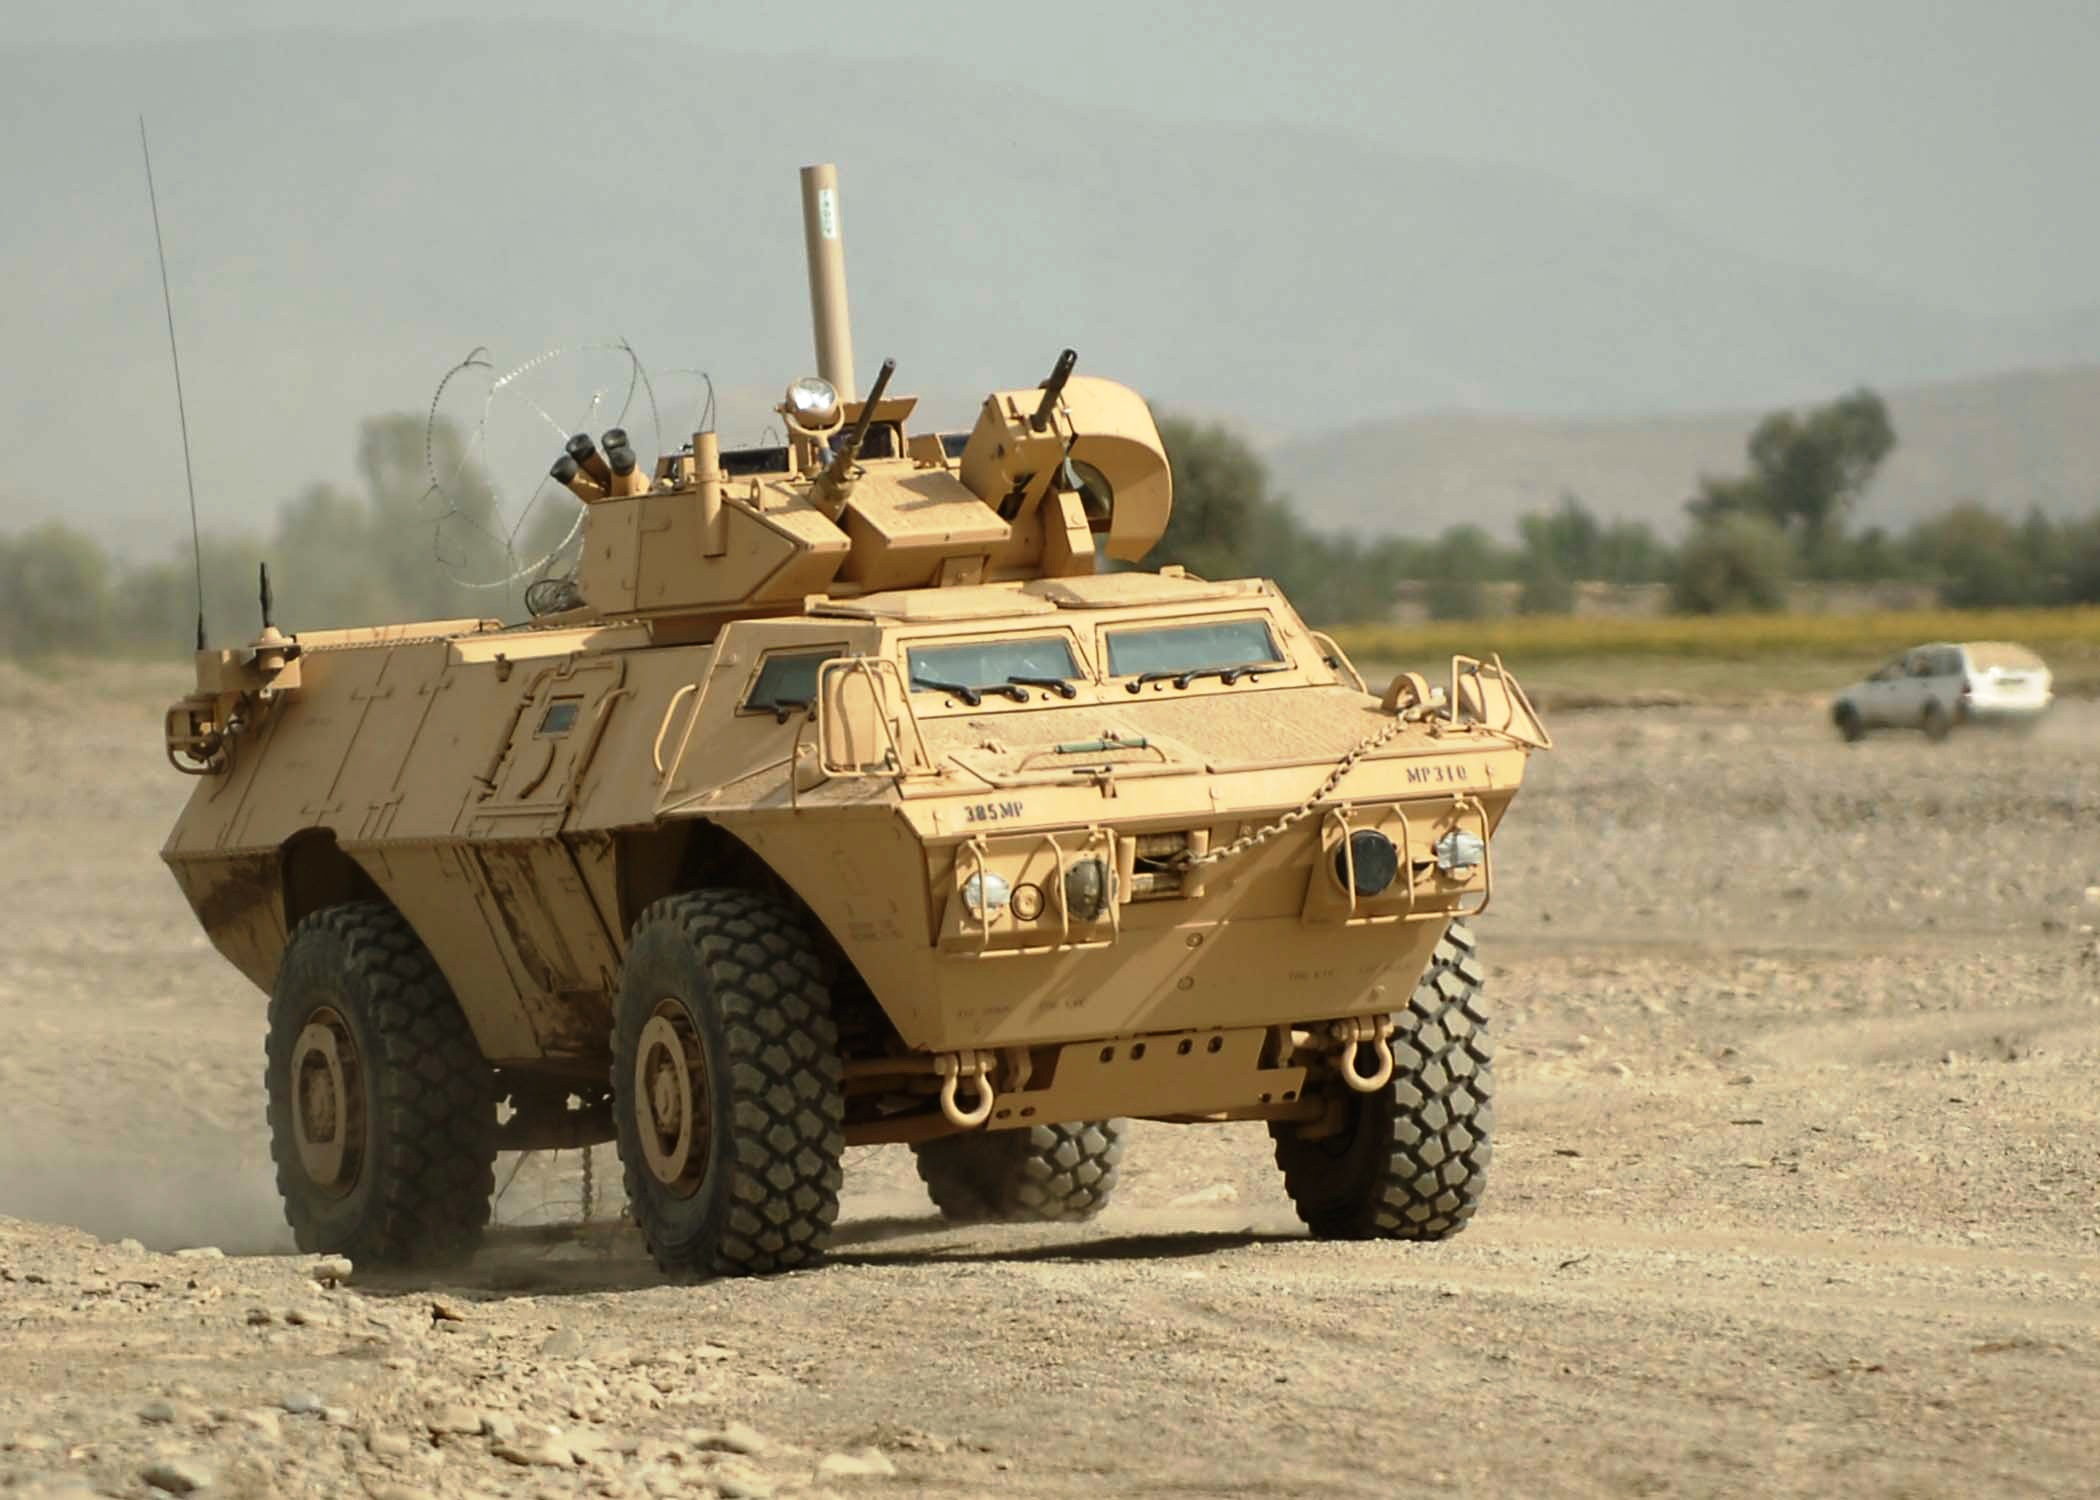 http://upload.wikimedia.org/wikipedia/commons/6/6b/M1117_Armored_Security_Vehicle.jpg